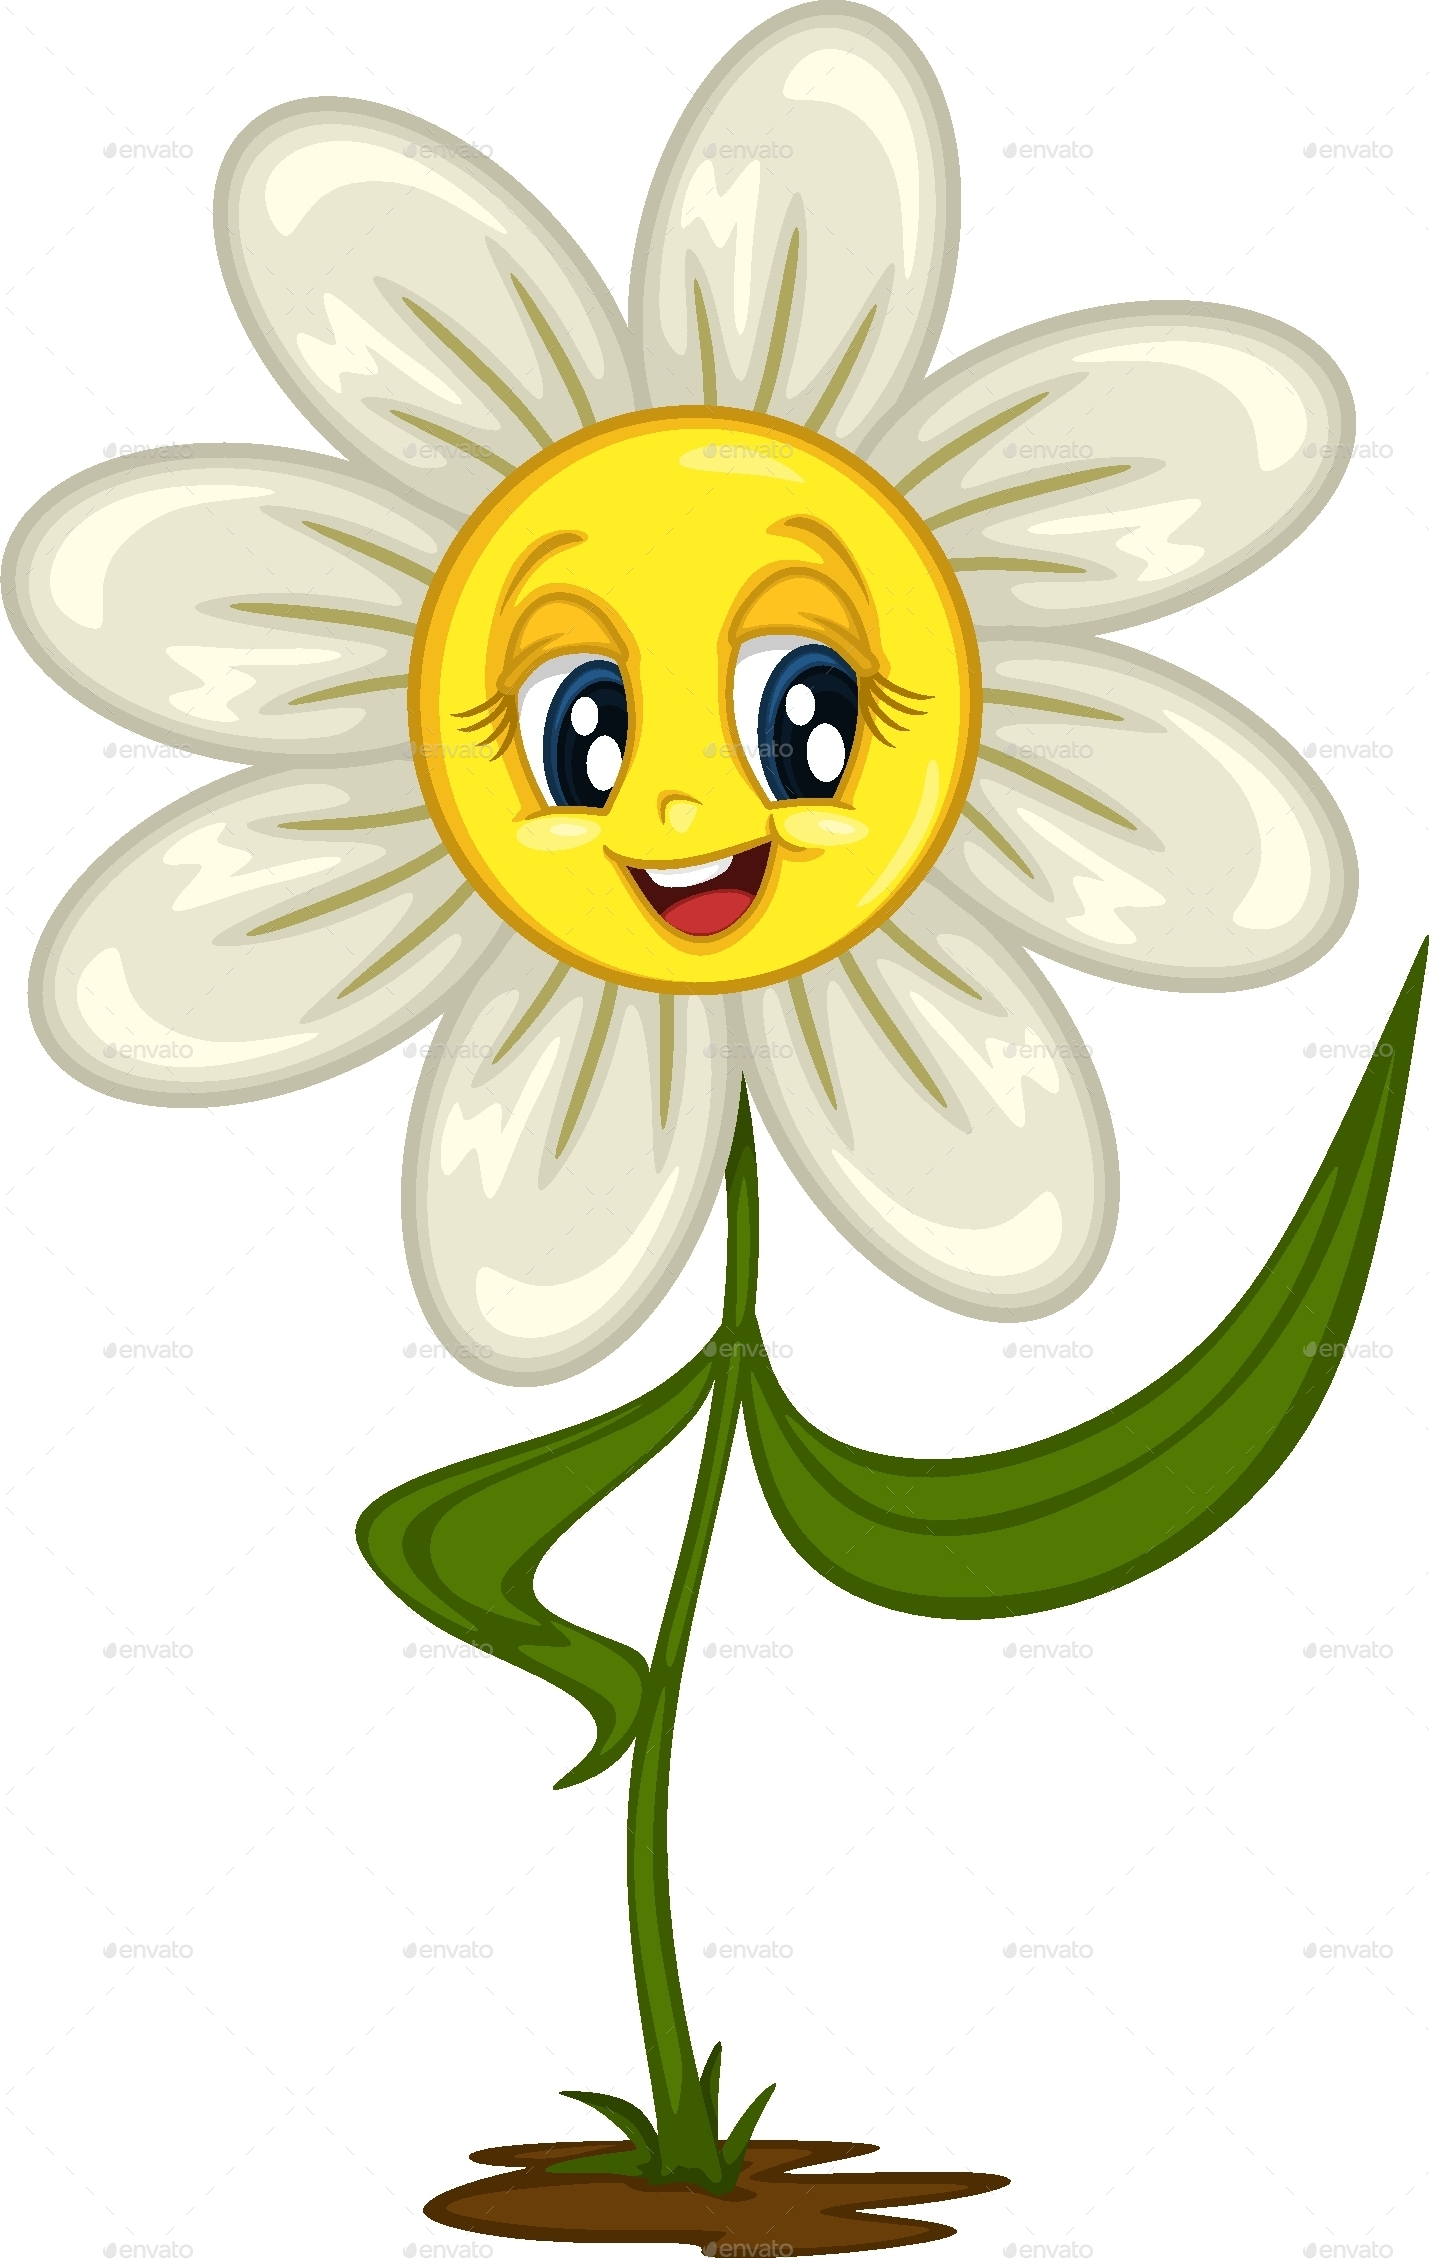 Cartoon Daisy Stickers for Different Situations